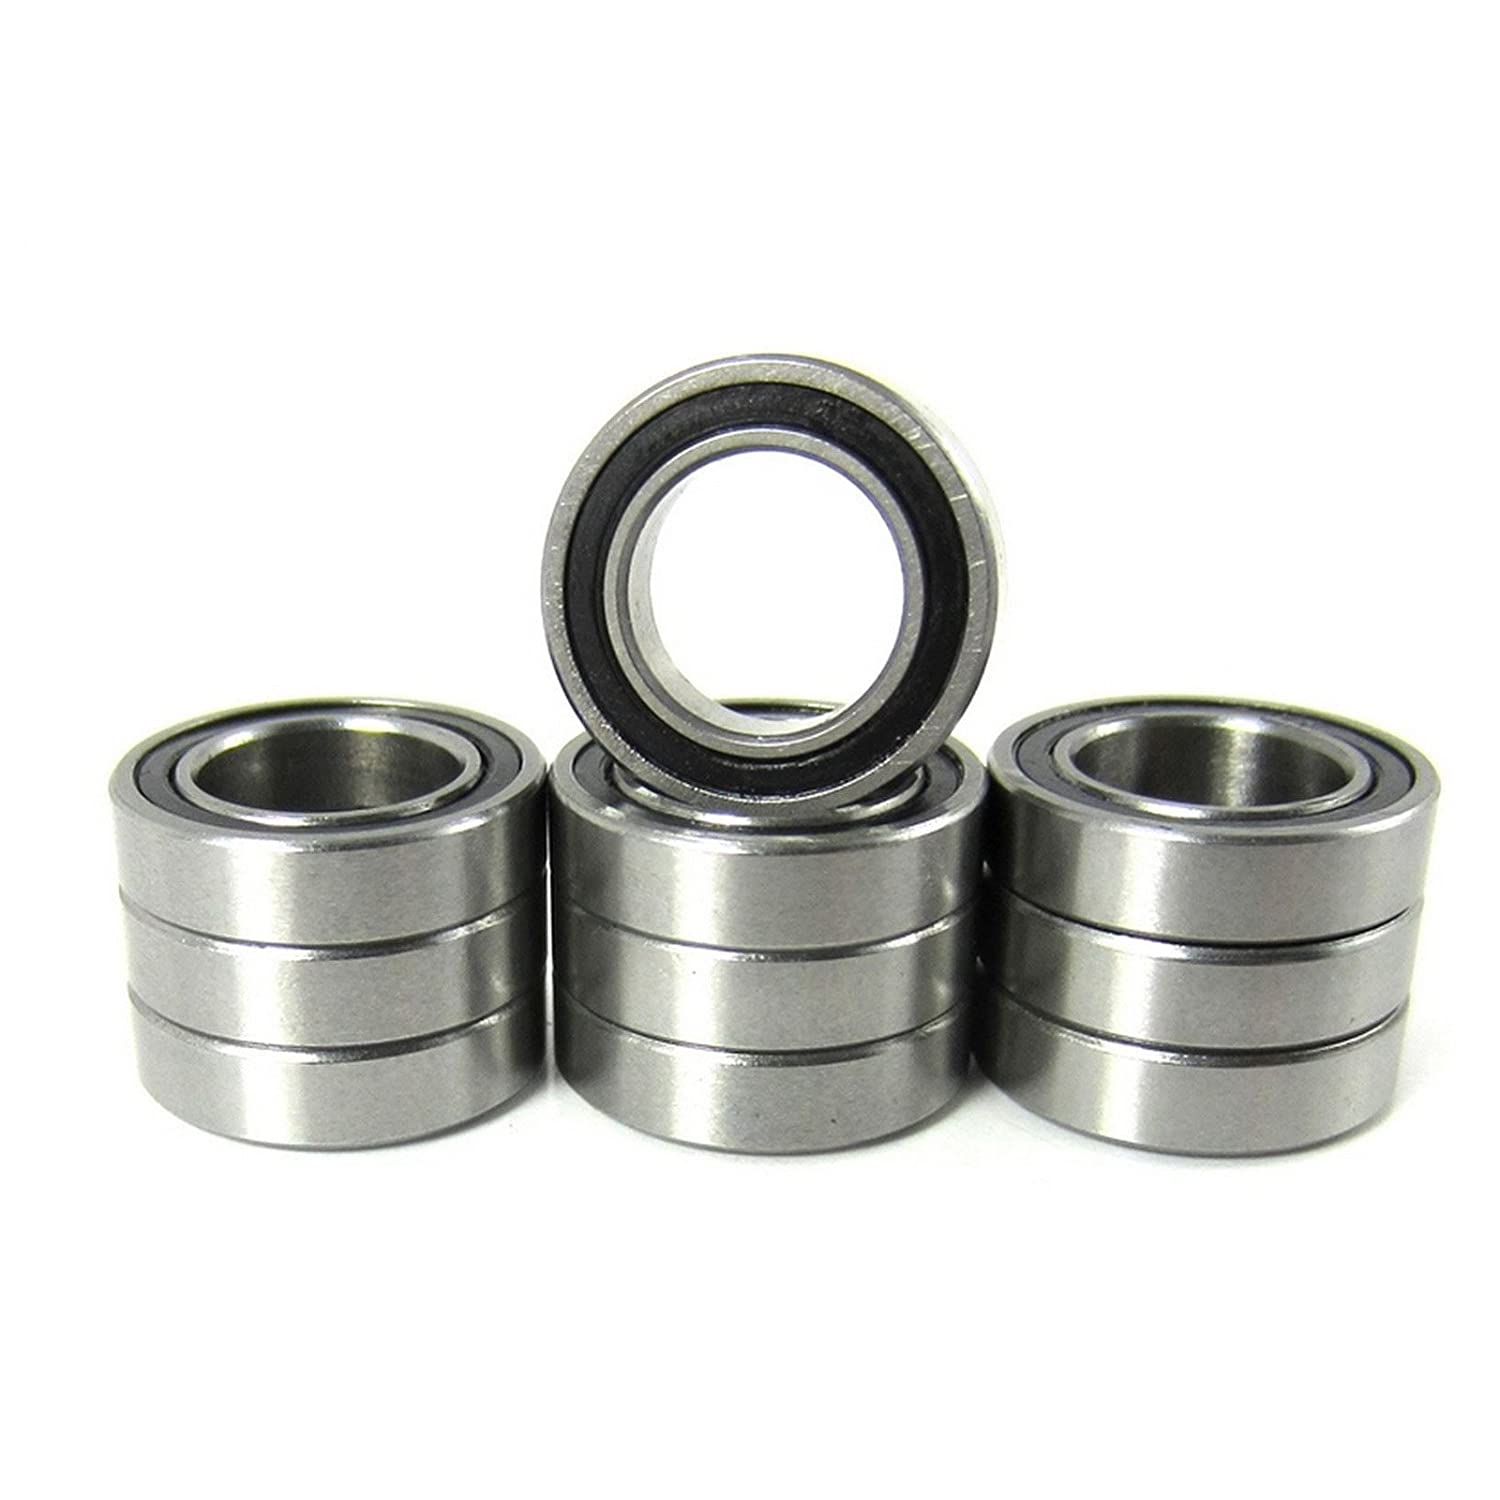 "10pcs. 3/8x5/8x5/32"" Precision Ball Bearings Chrome Steel ABEC 3 Rubber Seals TRB RC"